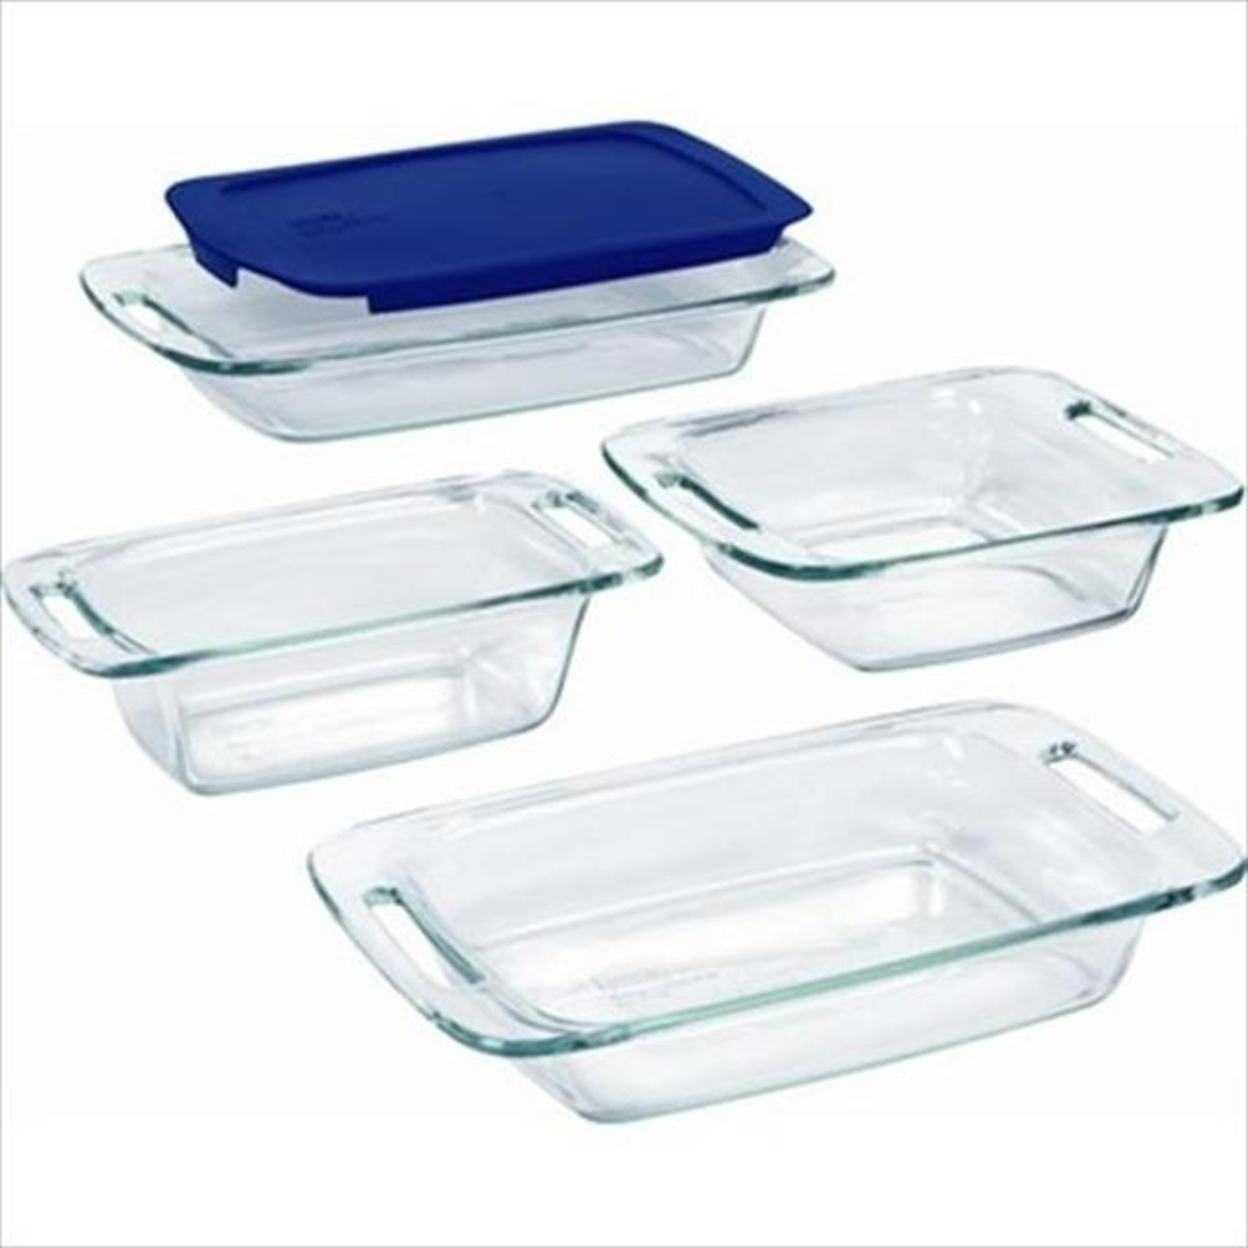 Pyrex 1093842 Glass Easy Grab Bake Set with Blue Plastic Cover - 5 Pieces 596d35962a00e402301f61ea